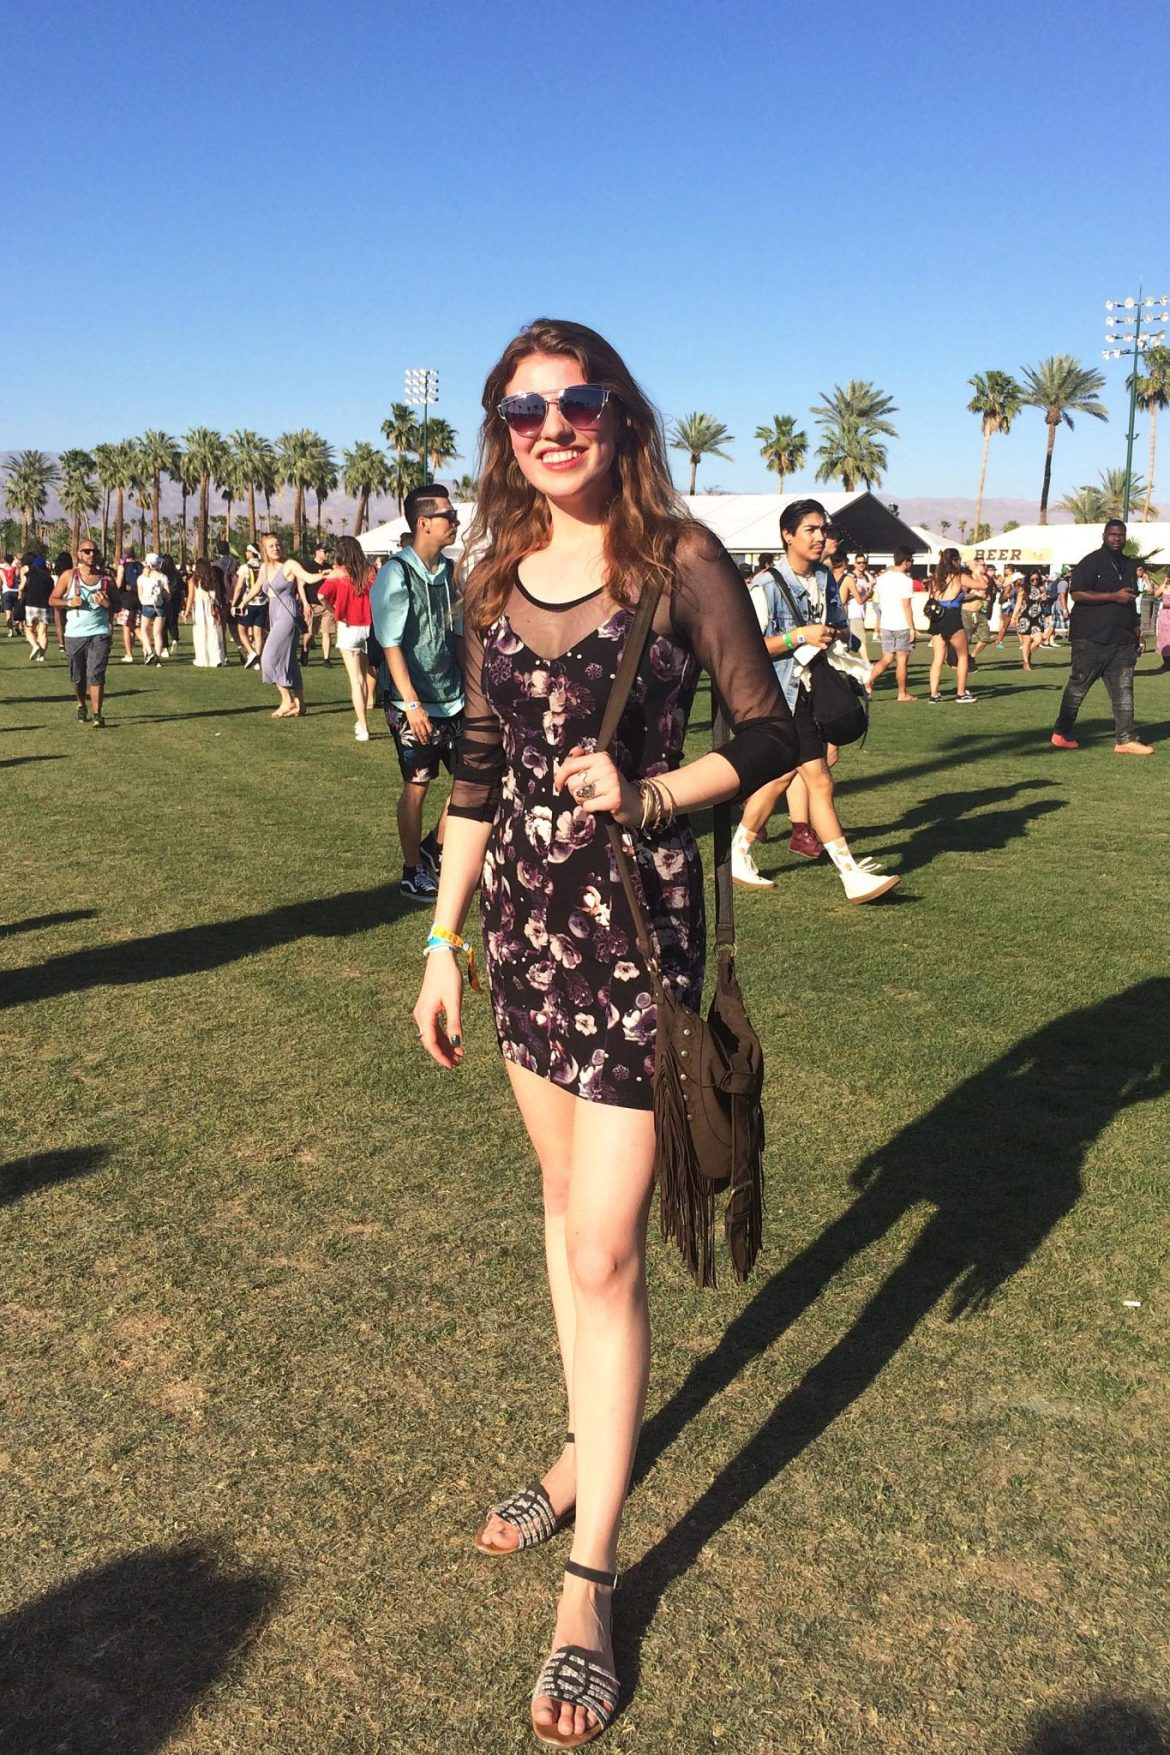 Coachella 2017 (+vegan food tips)